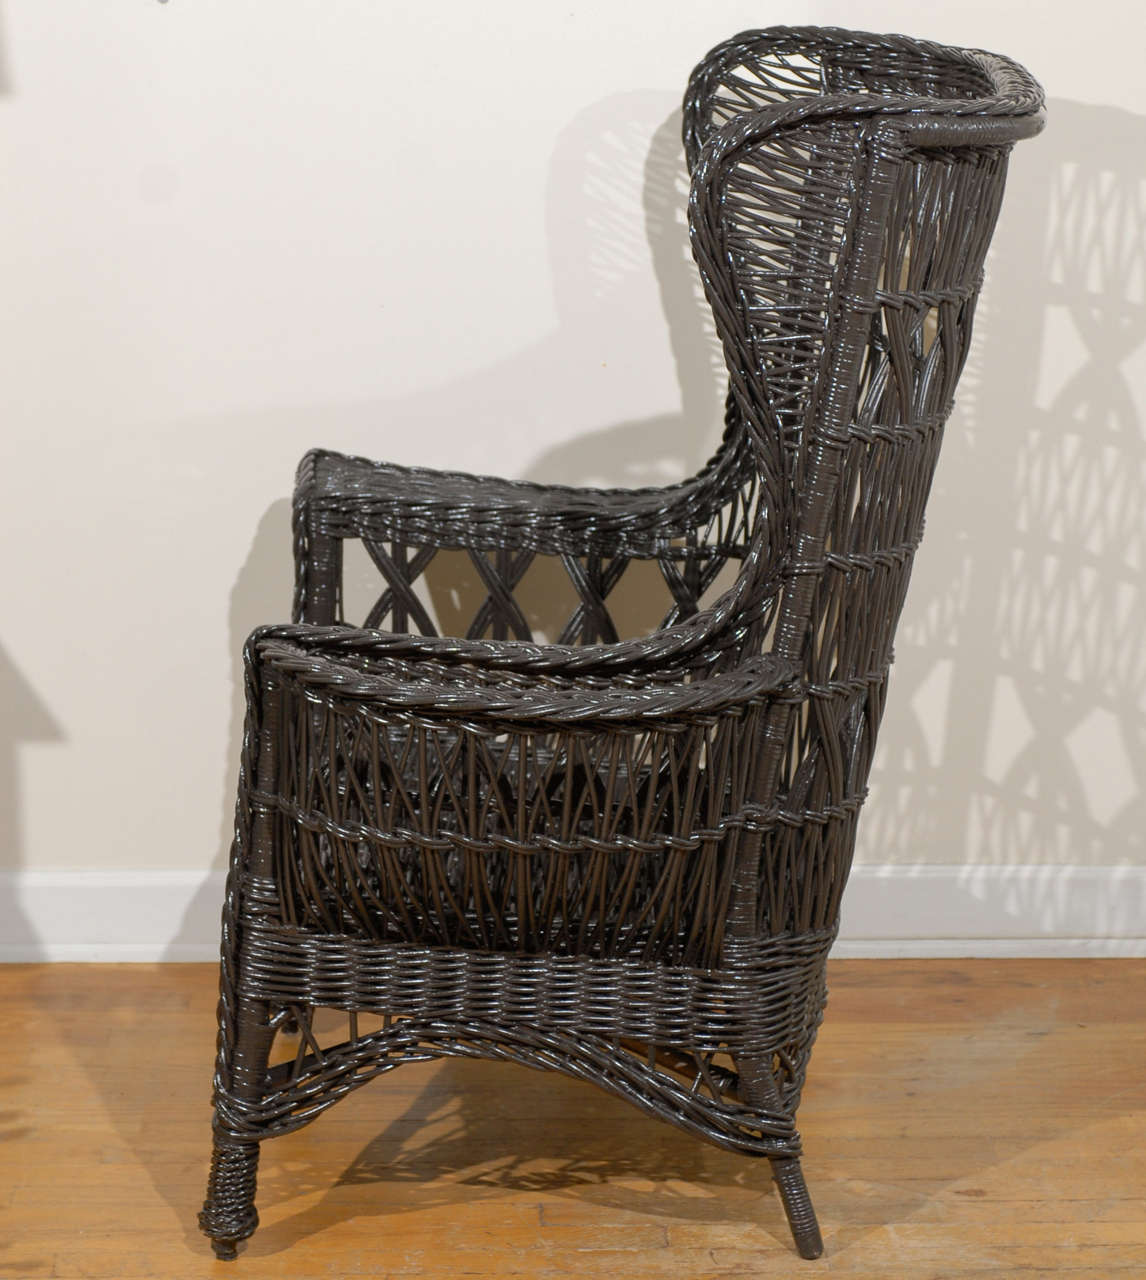 Antique American Wicker Wing Chair with Magazine Pocket For Sale 2